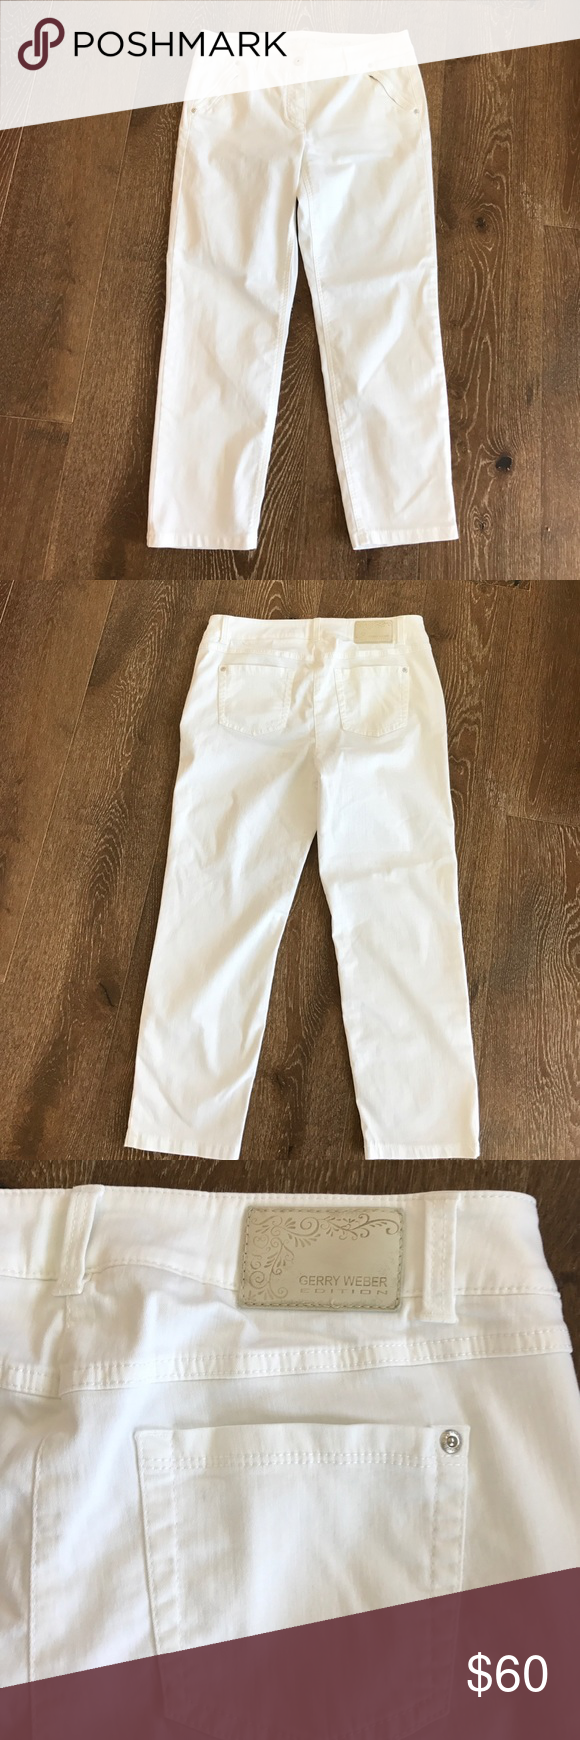 low priced 38f00 d70cd Gerry Weber White Jeans Gerry Weber Edition Roxy Perfect Fit ...